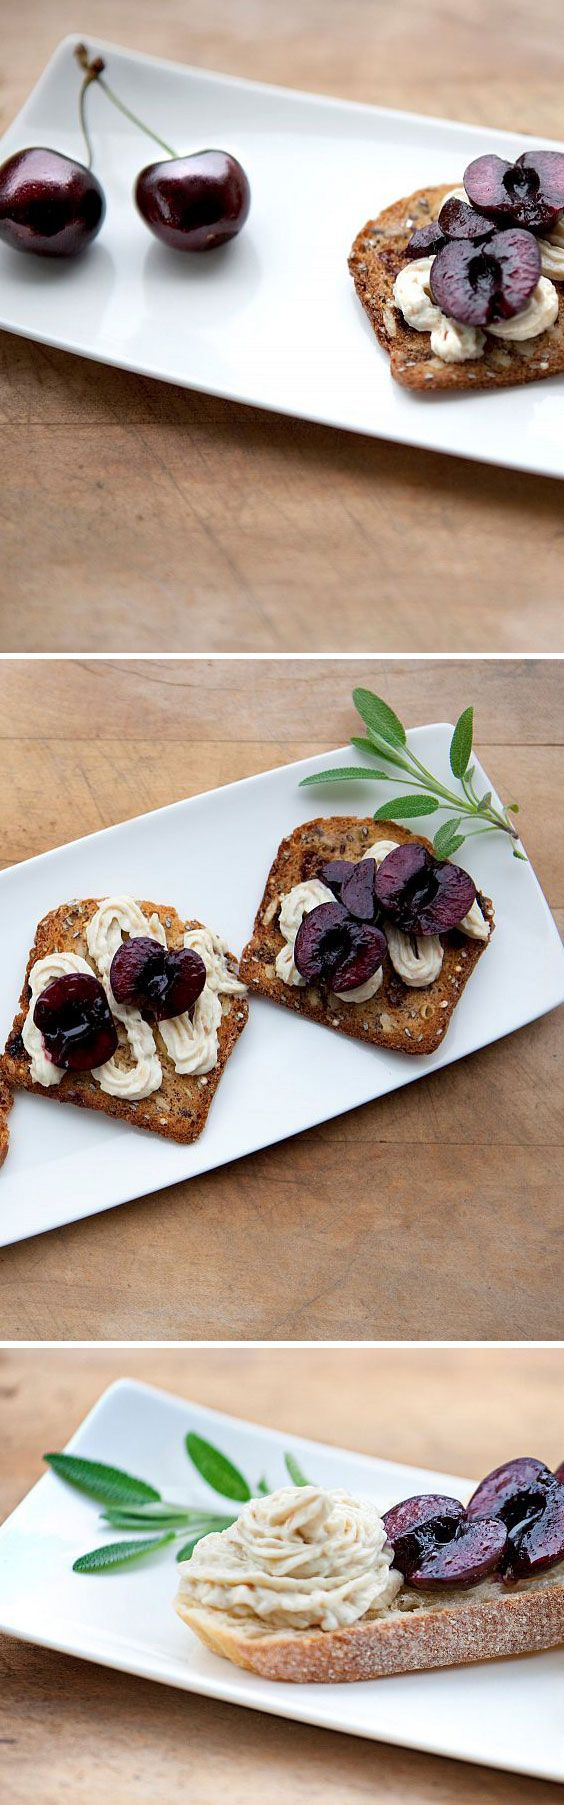 Crostini with Balsamic Cherries and Smoked Cheddar Spread | An easy way to impress and satisfy guests with sweet BC Tree Fruits cherries.